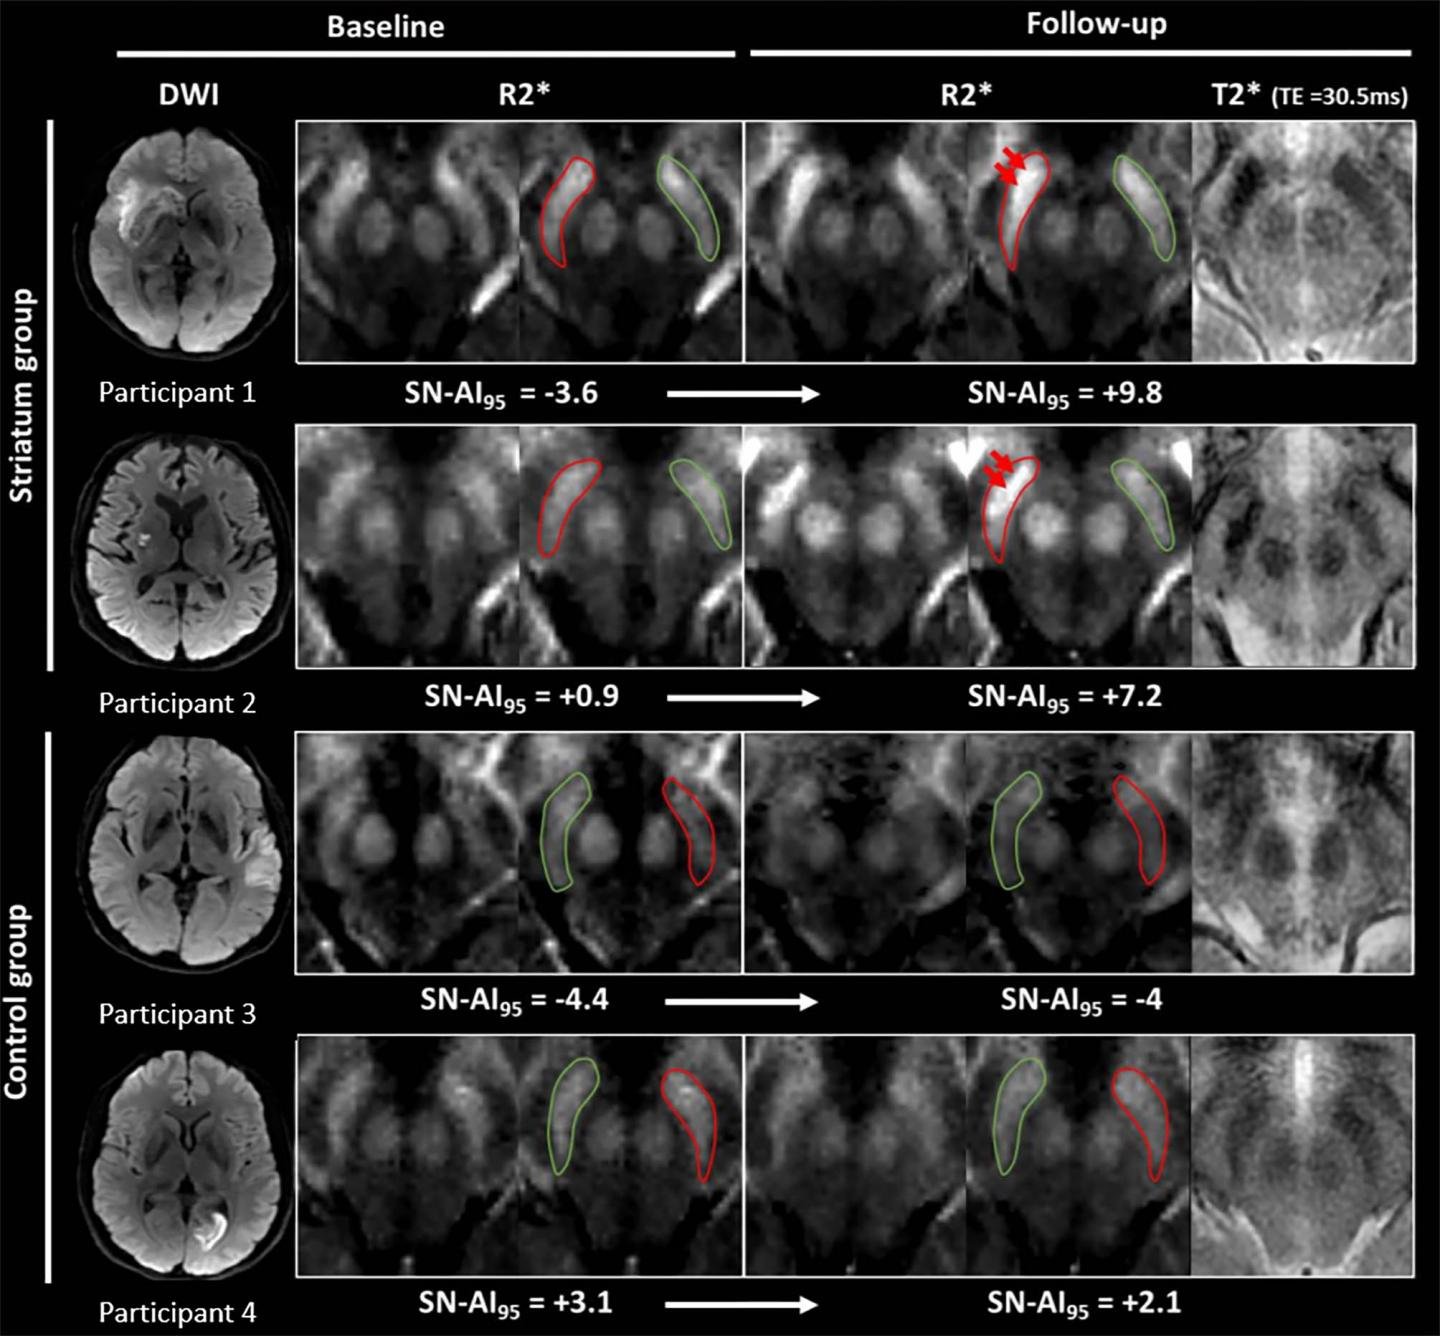 Iron Measurements with MRI Reveal Stroke's Impact on Brain (1 of 3)